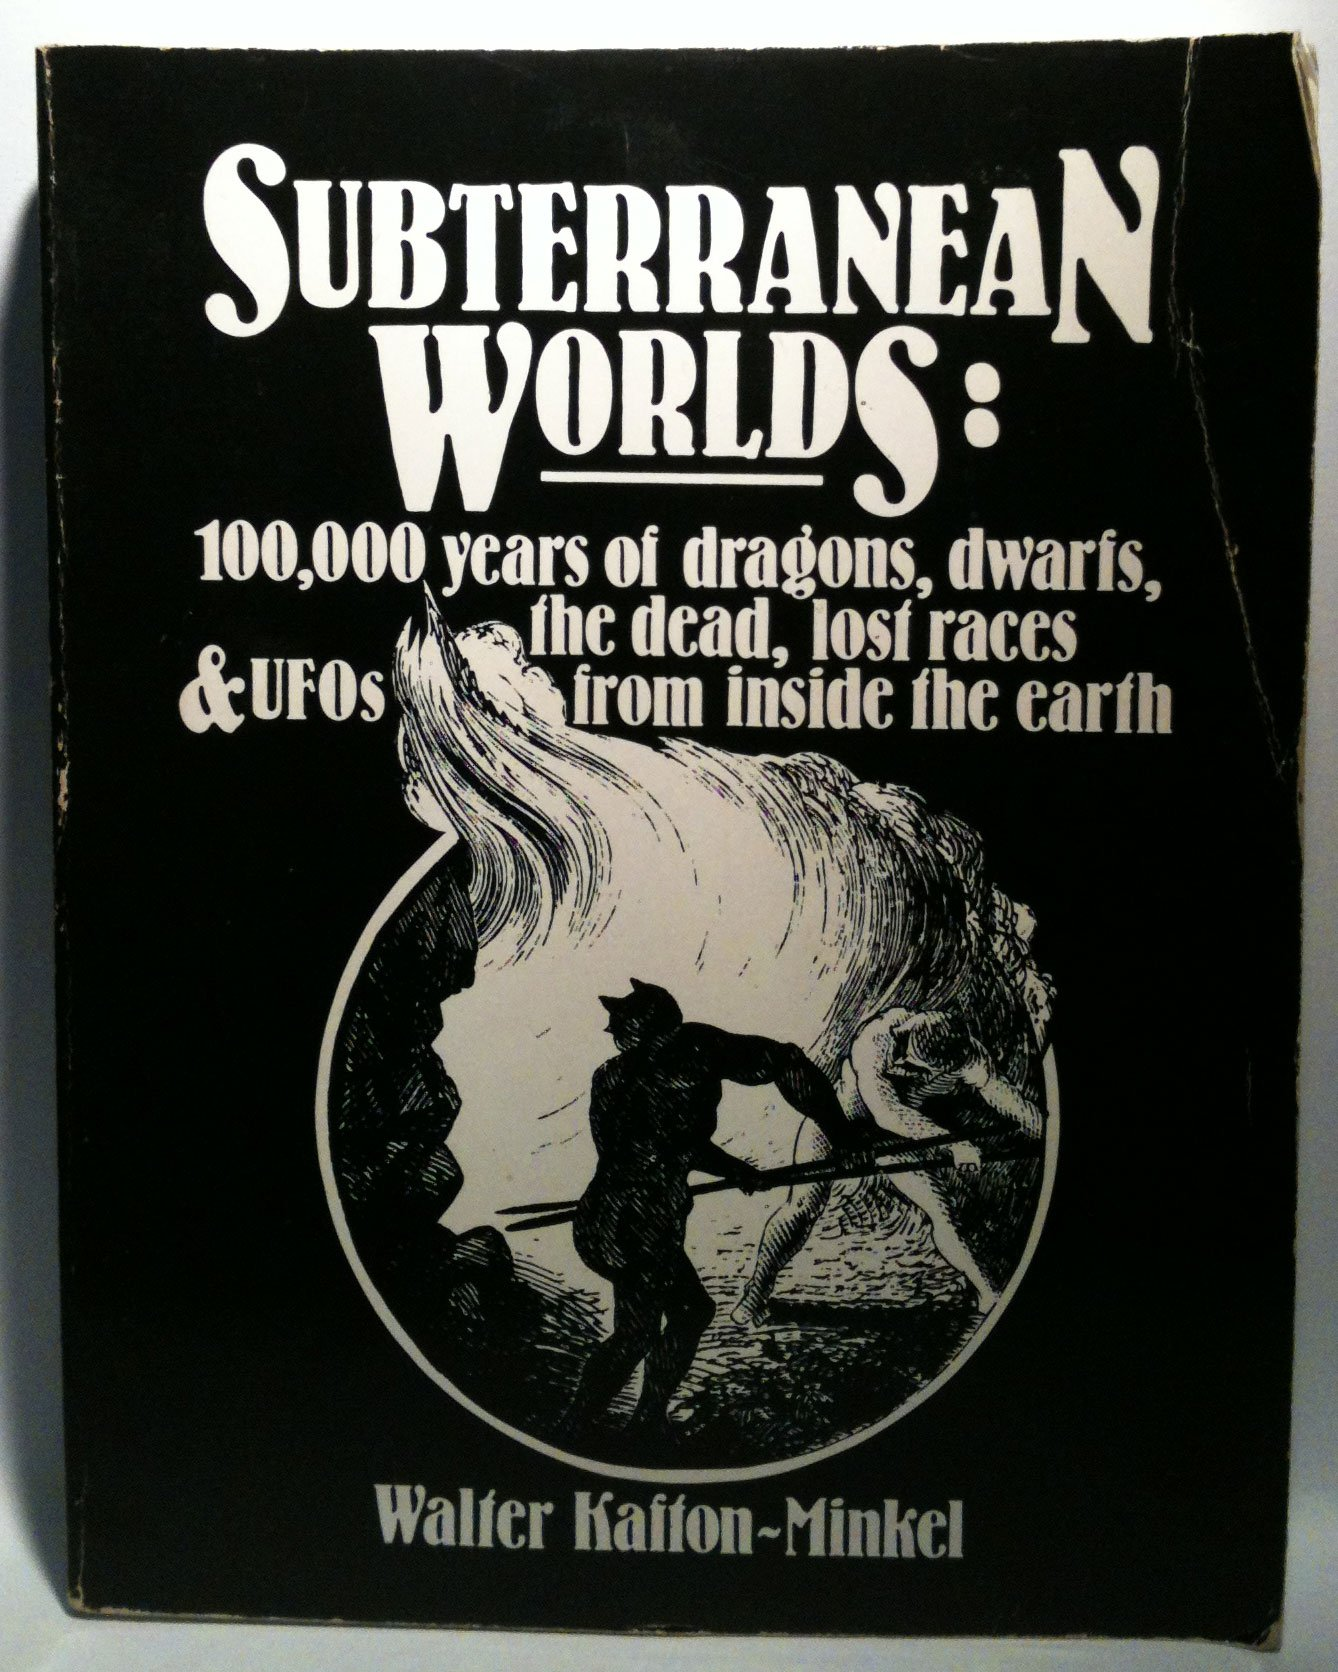 Subterranean Worlds: 100,000 Years of Dragons, Dwarfs, the Dead, Lost Races and Ufos from Inside the Earth, Kafton-Minkel, Walter